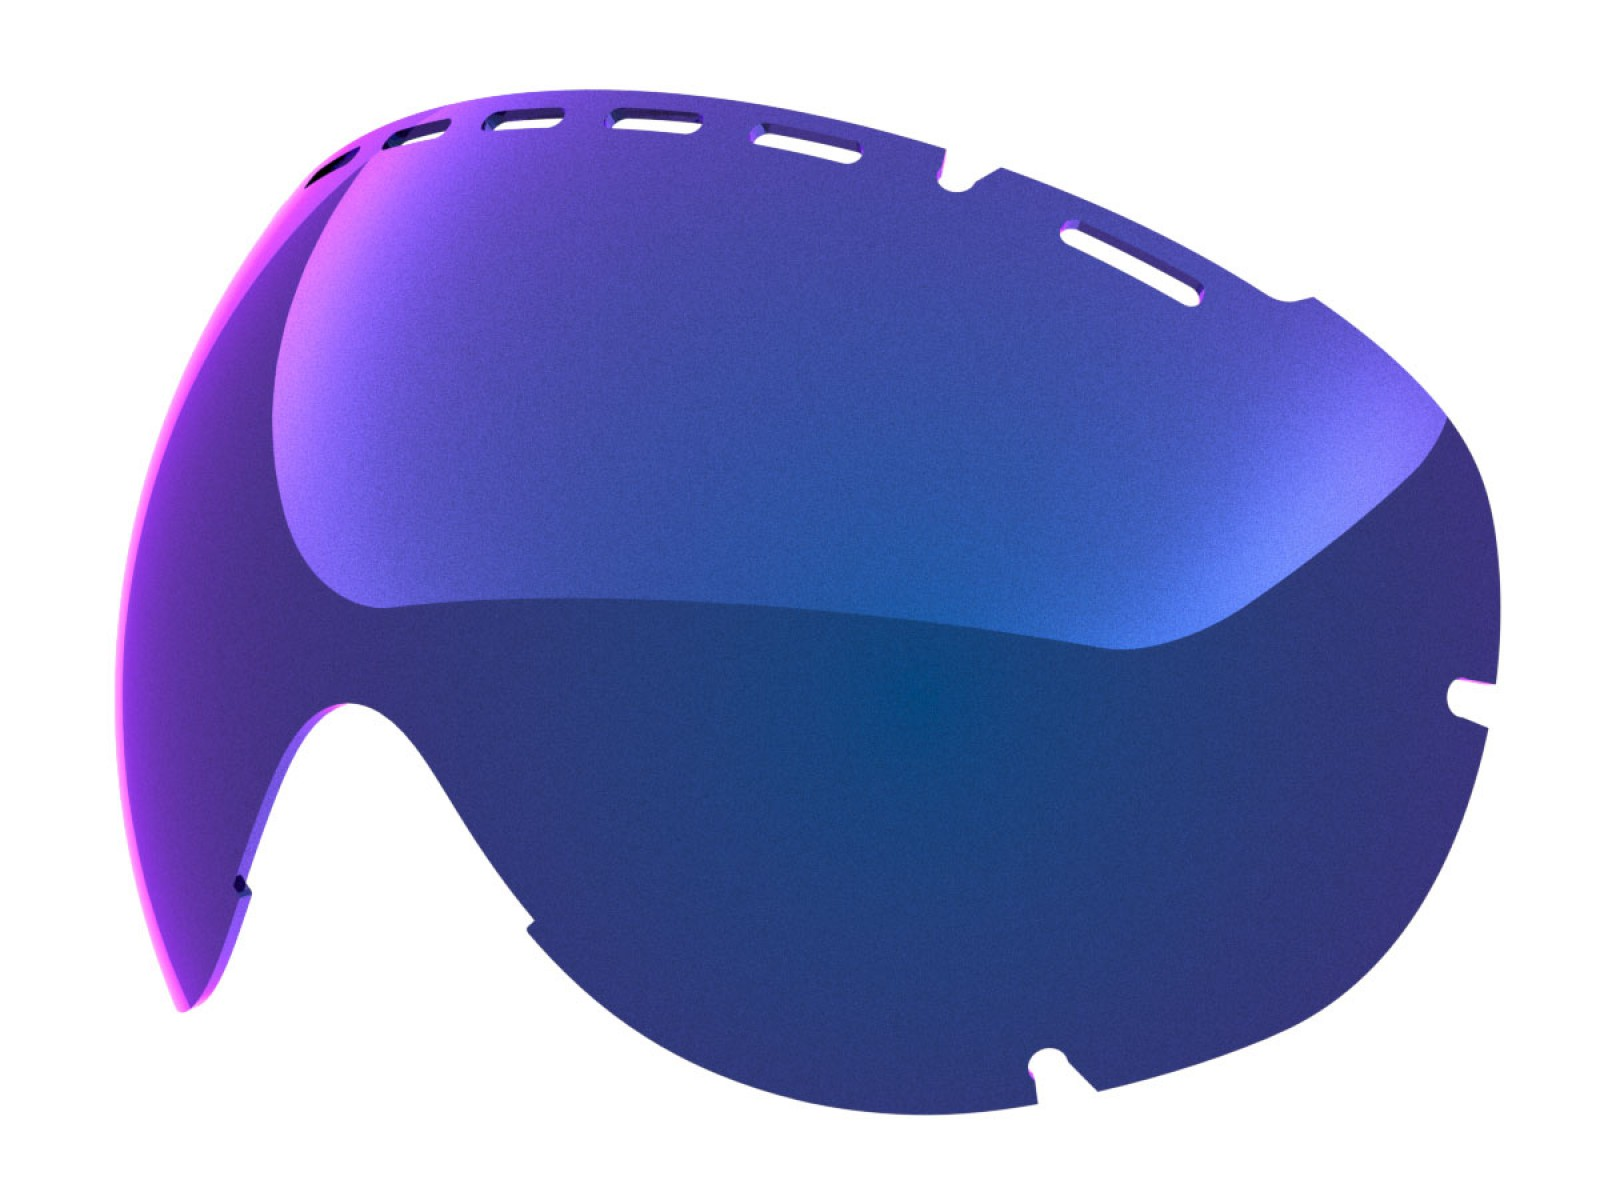 BLUE MCI LENS FOR EYES GOGGLE